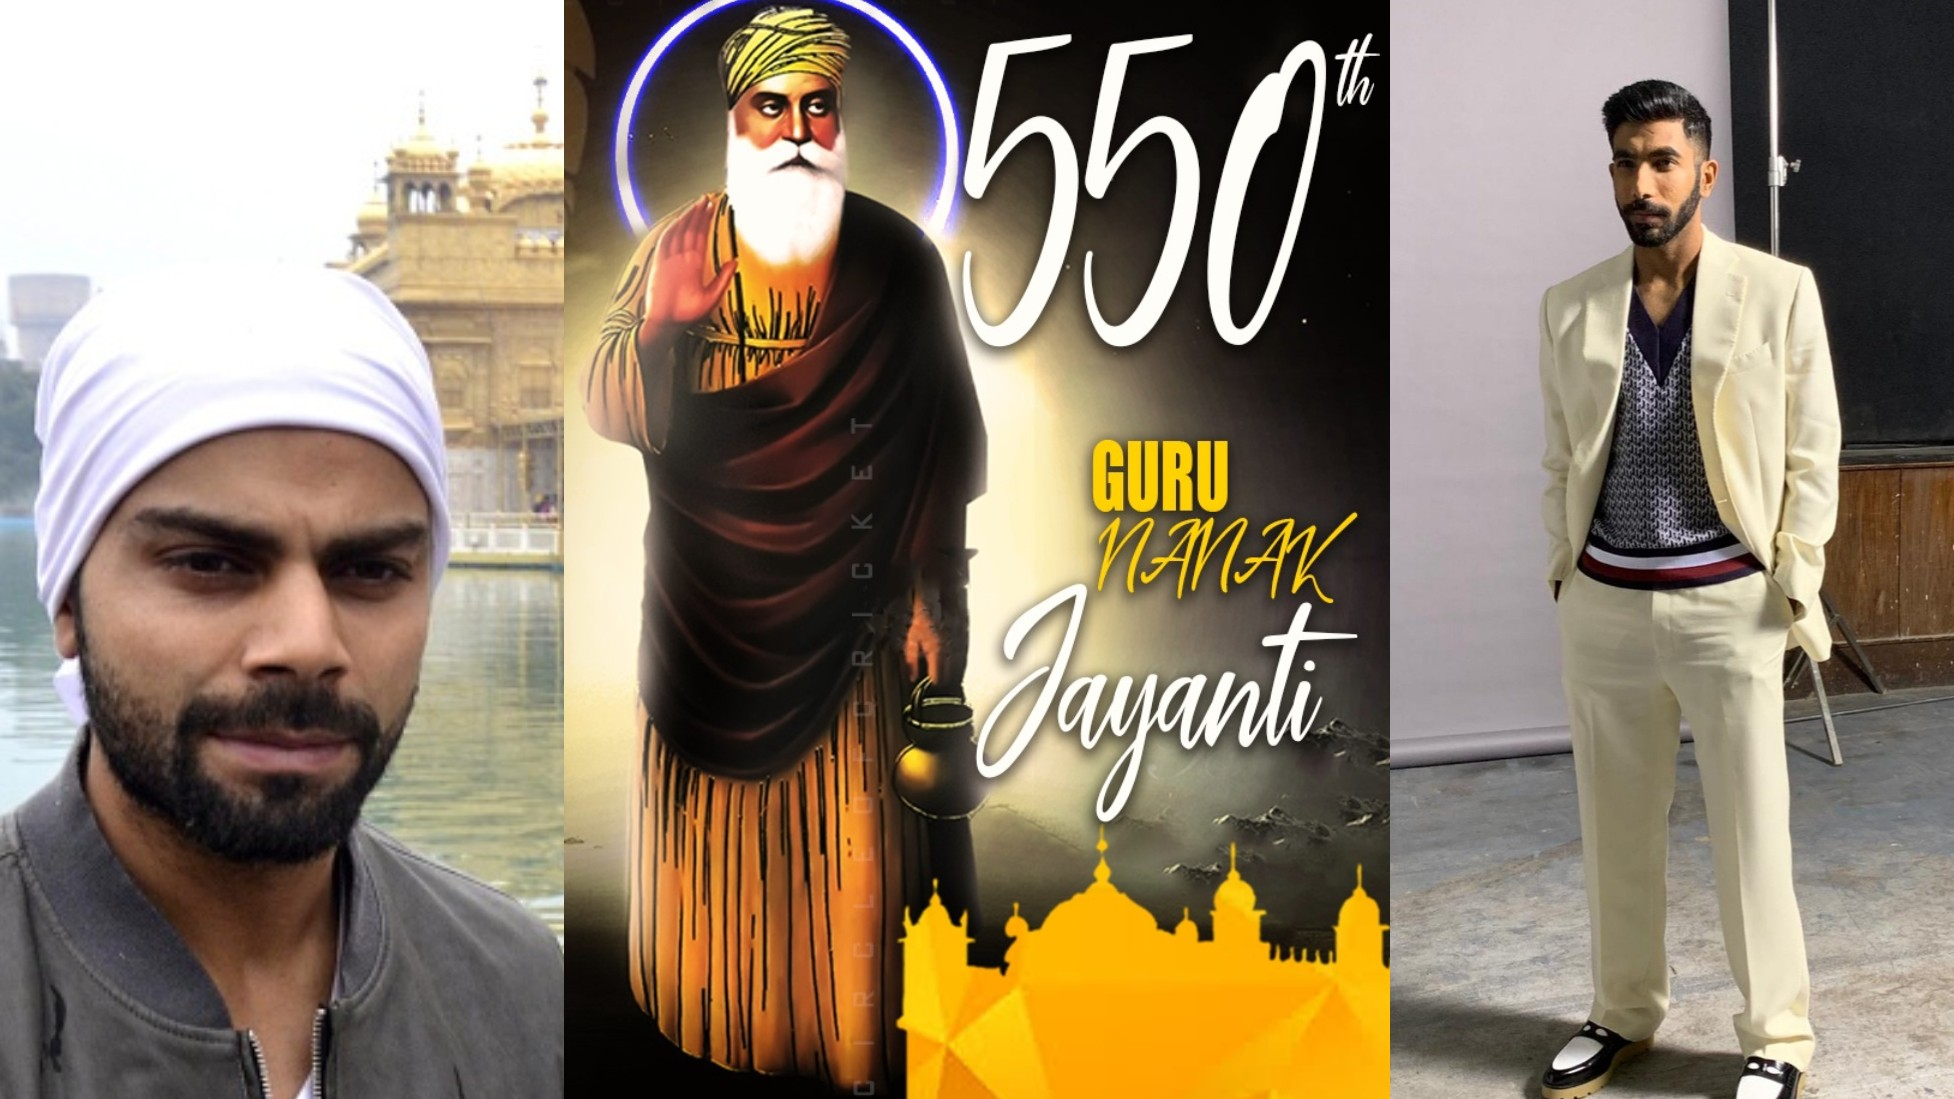 Cricket fraternity wishes the country on holy occasion of 550th Guru Nanak Jayanti